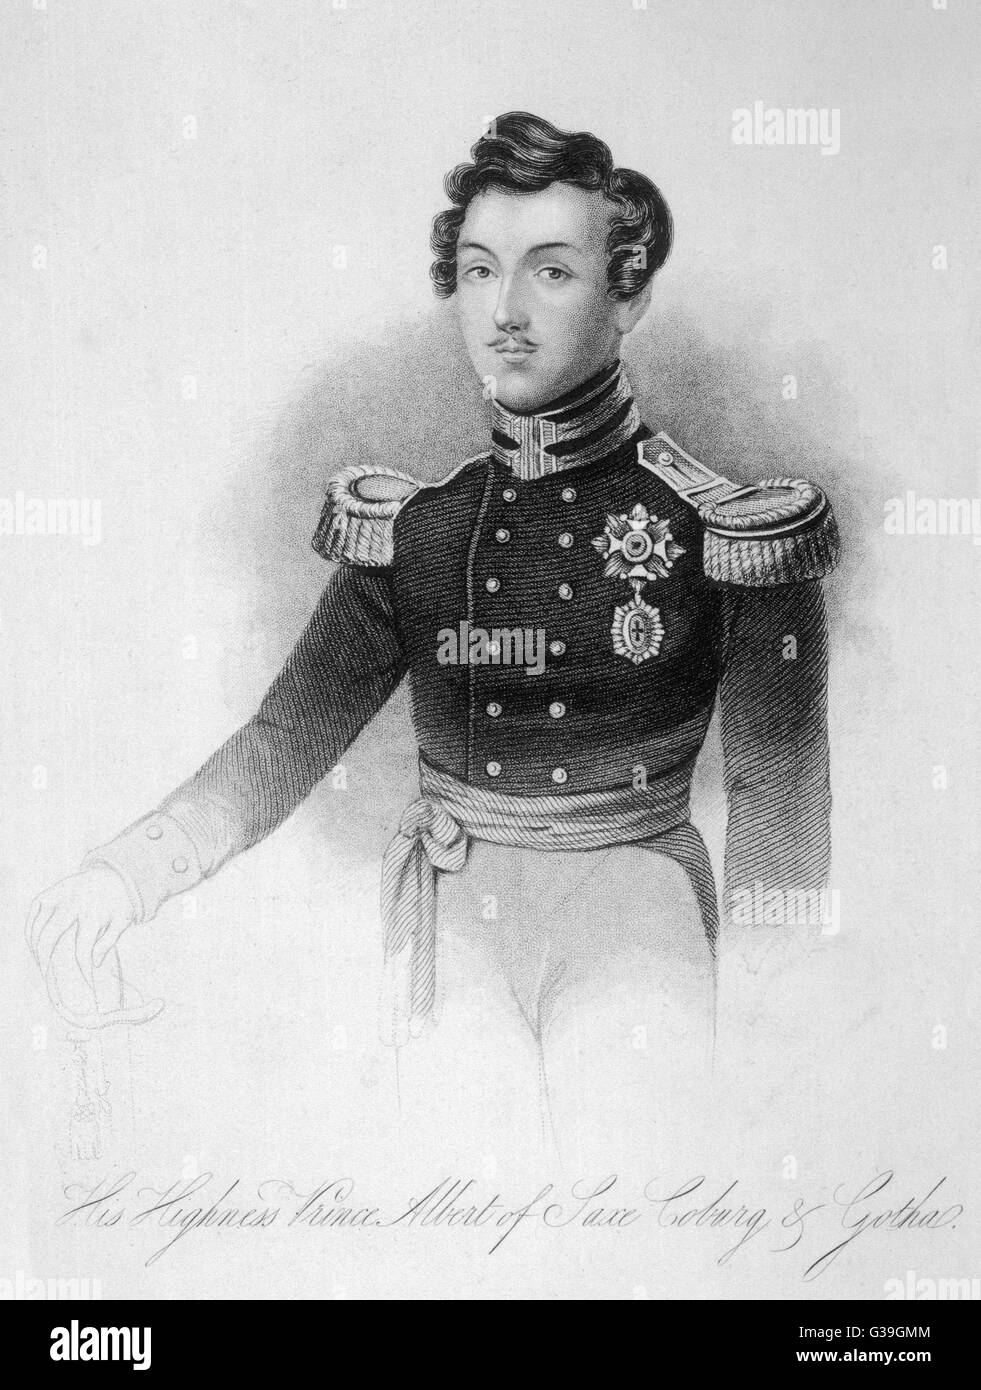 PRINCE ALBERT, CONSORT OF  QUEEN VICTORIA  Engraving of the handsome  young prince 3 years before  his marriage - Stock Image